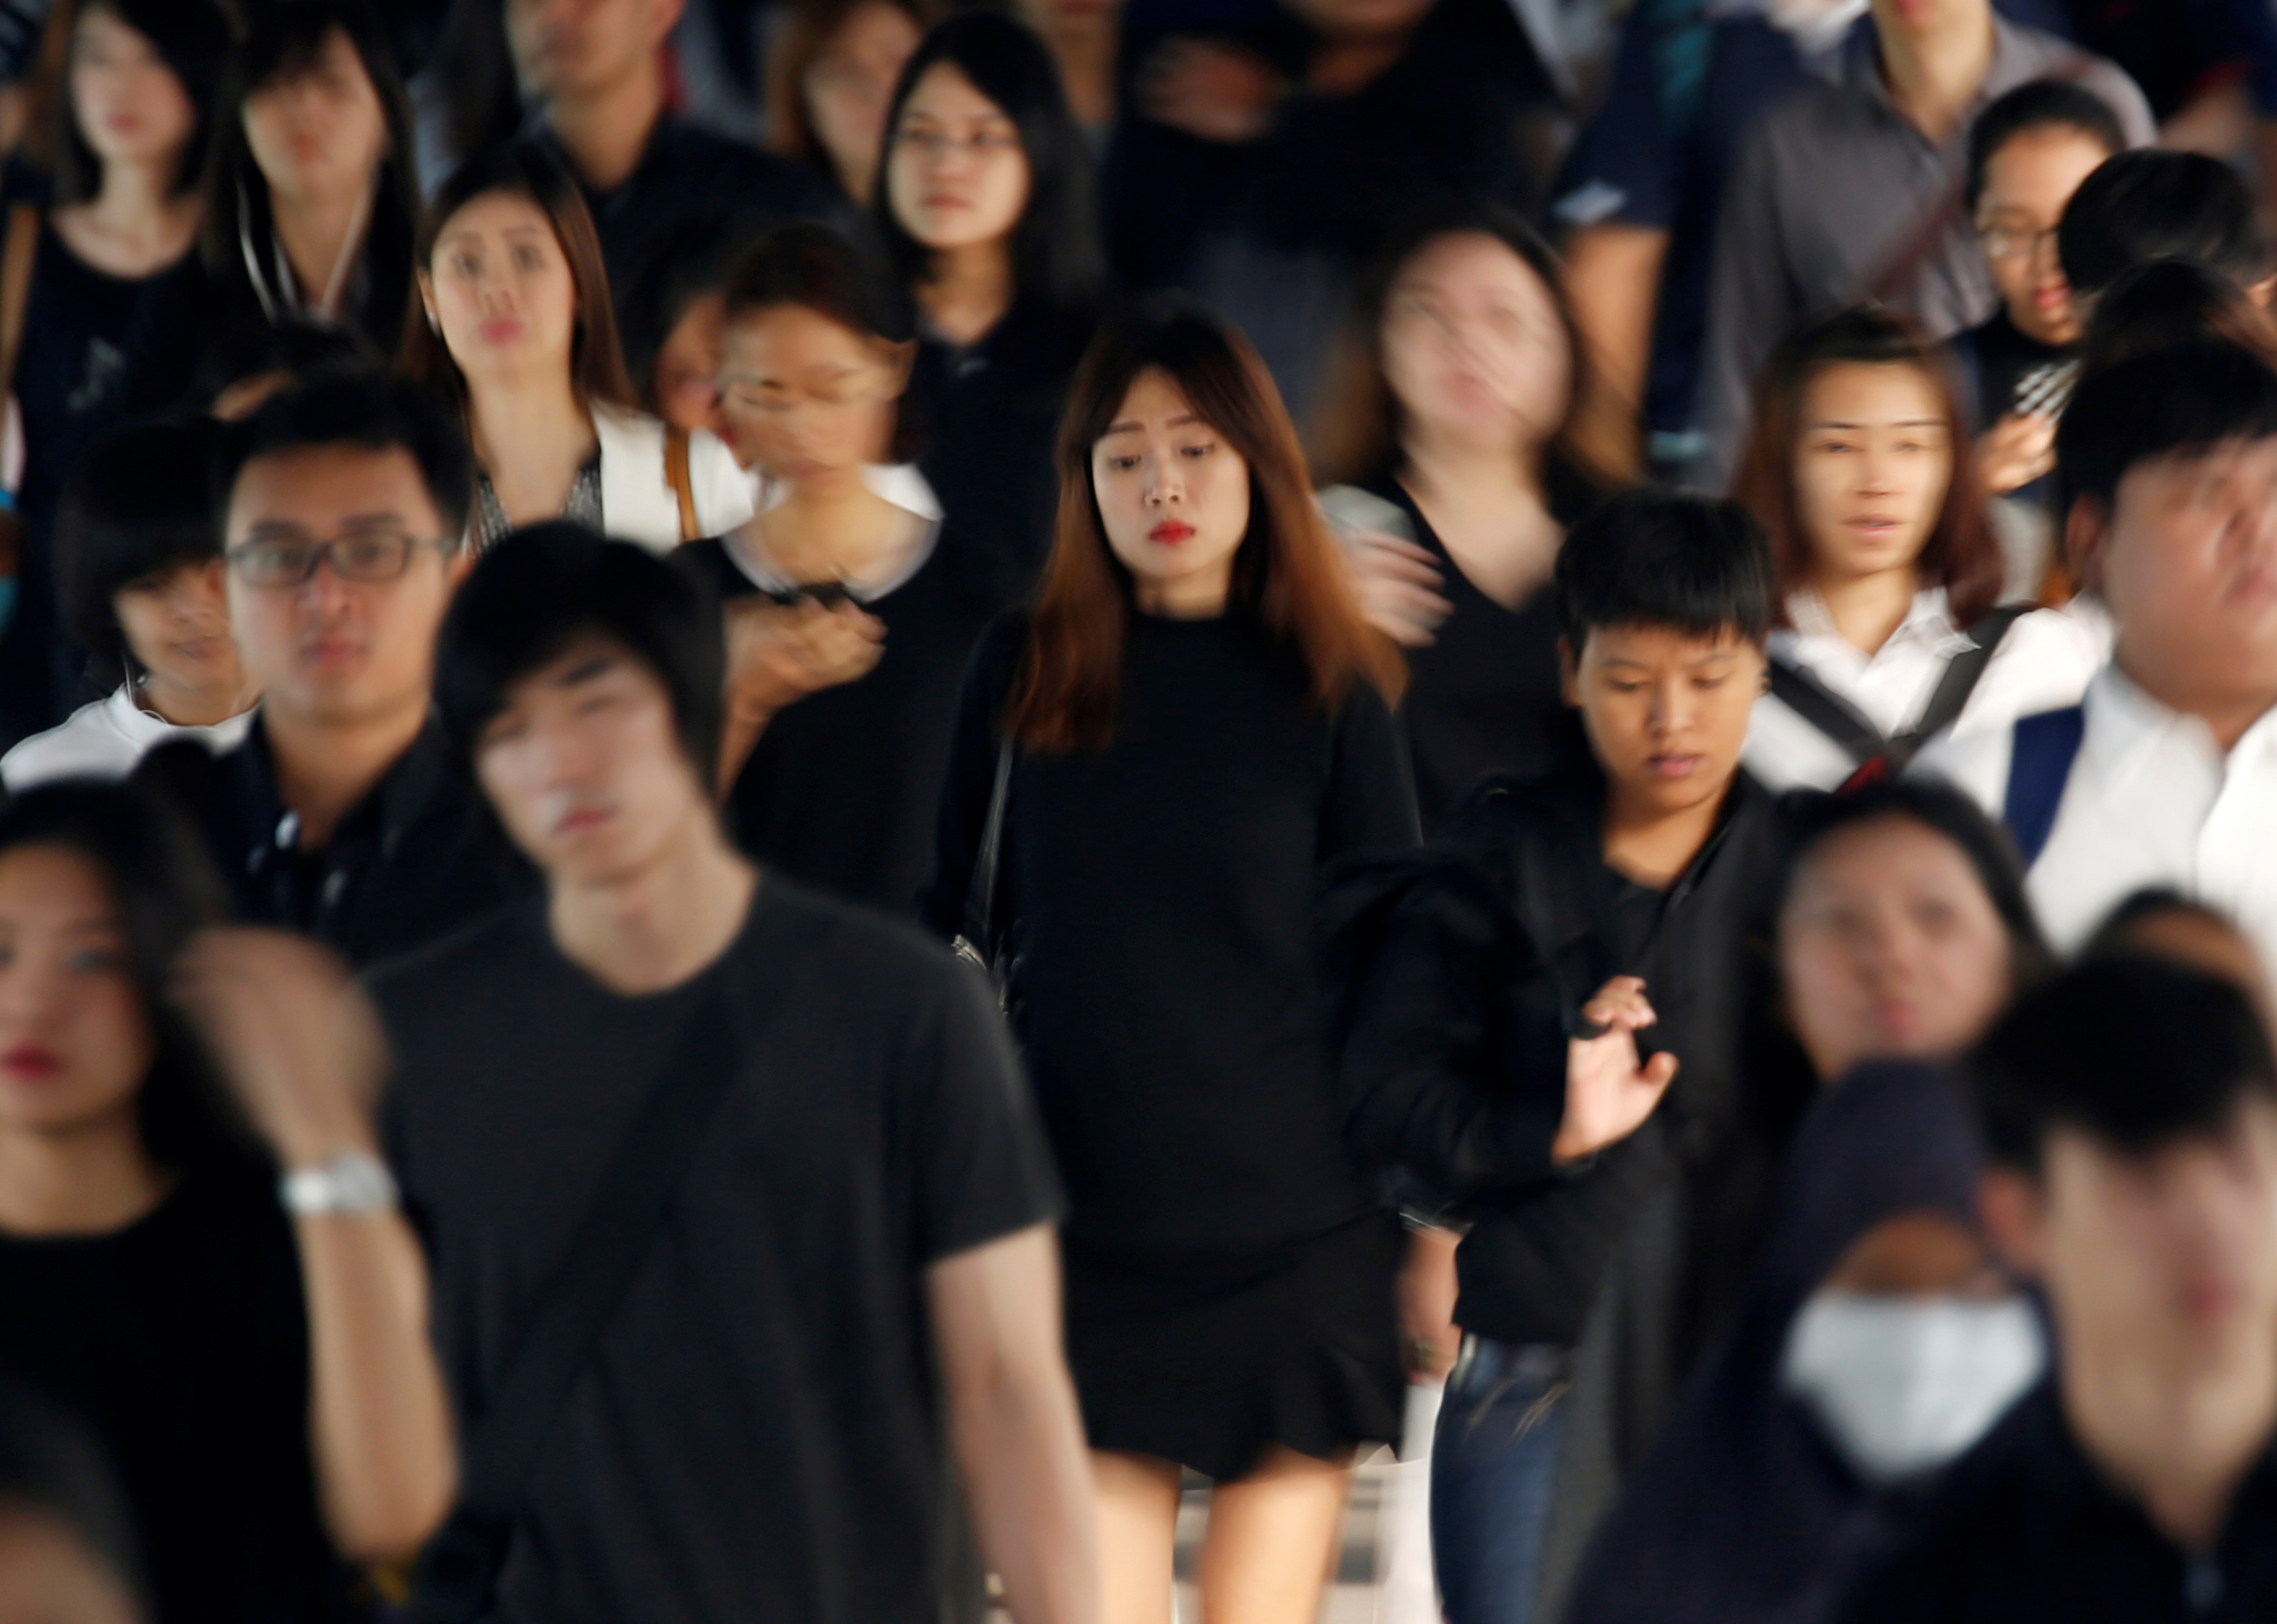 Passengers dressed in black and white or dark coloured clothes, to mourn the passing of Thailand's King Bhumibol Adulyadej, are seen during the morning rush hour at a station in Bangkok, Thailand, October 17, 2016. REUTERS/Issei Kato TPX IMAGES OF THE DAY - RTX2P3FN